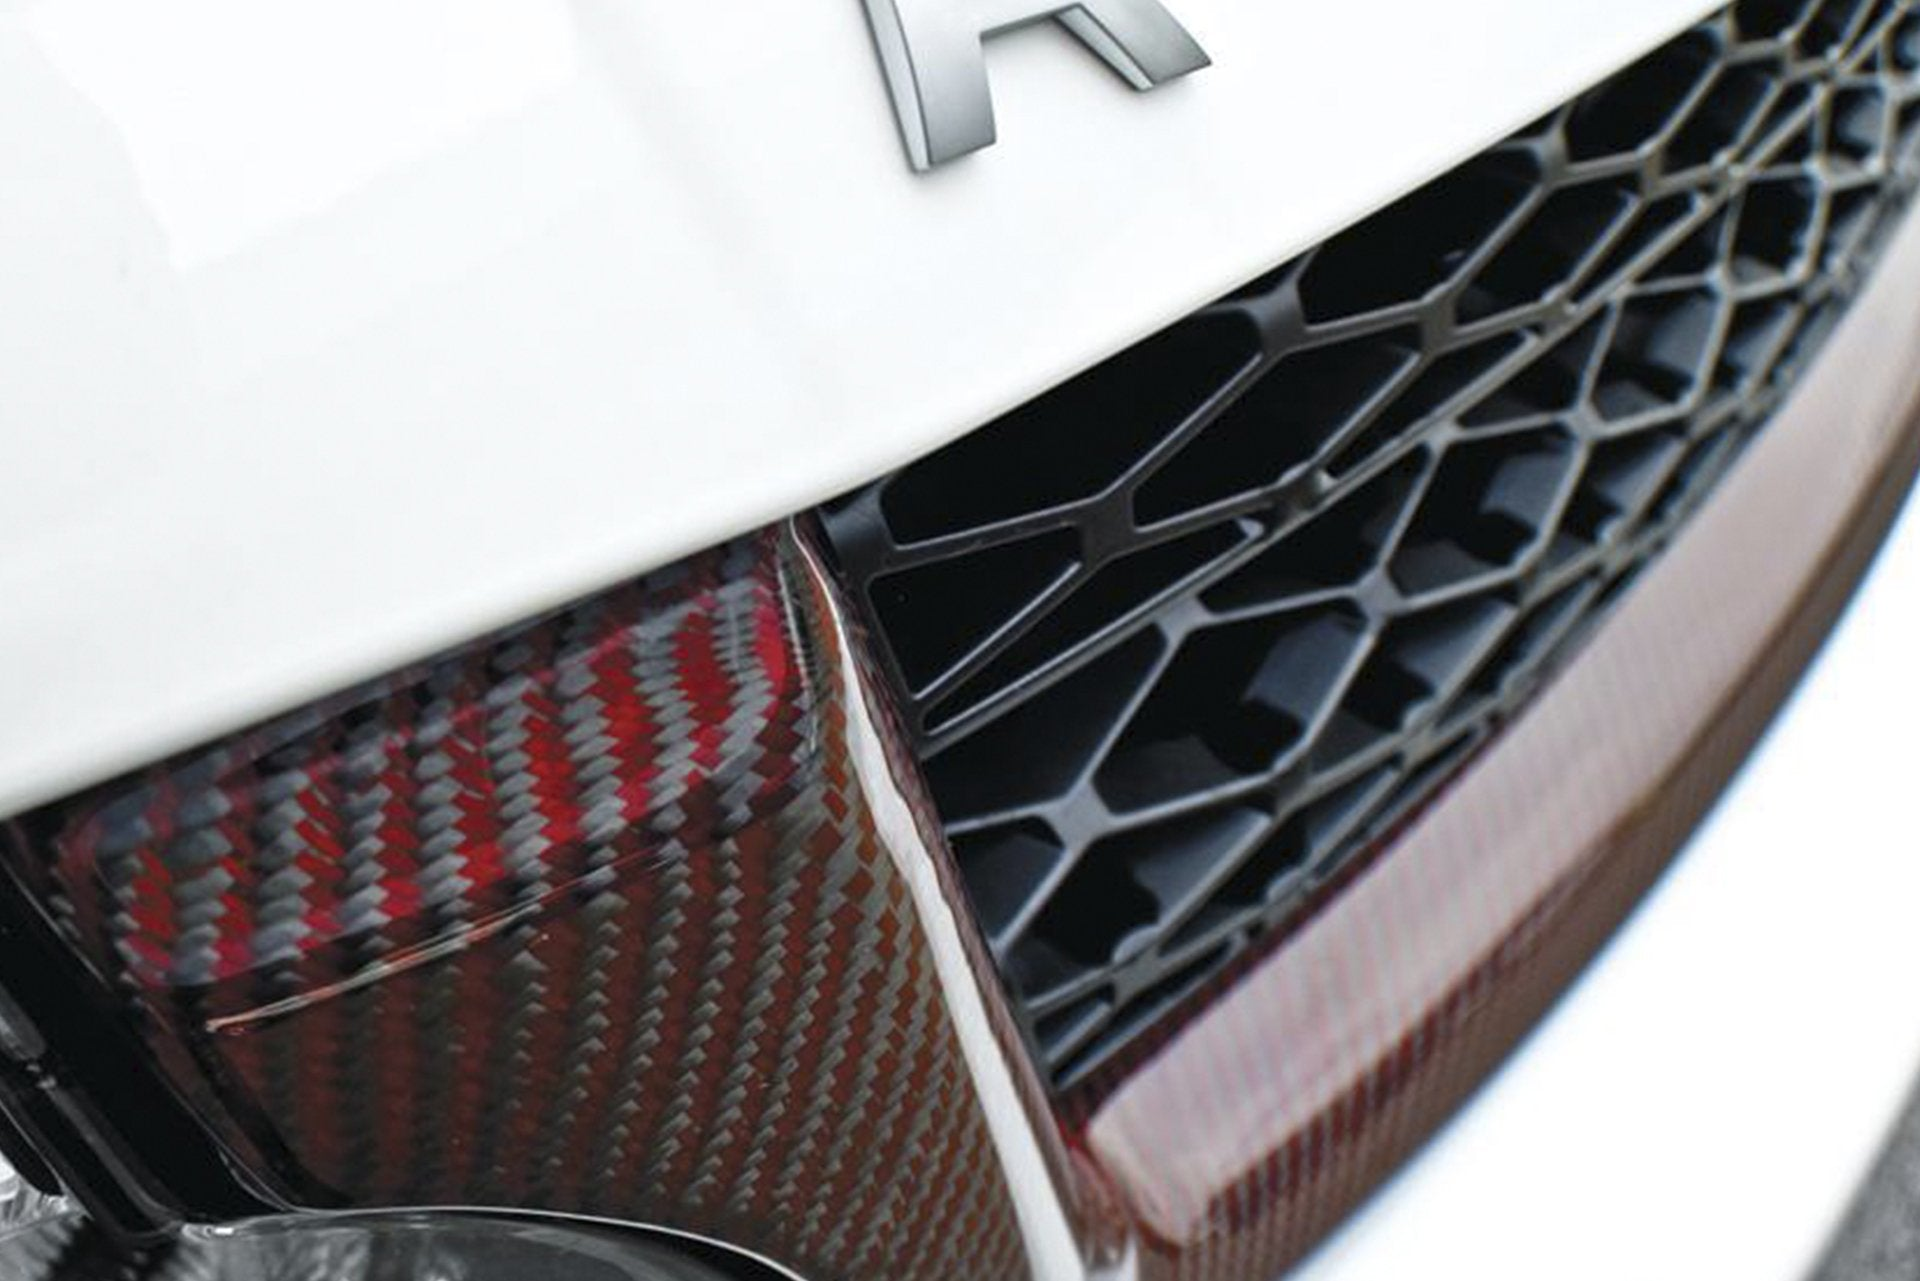 Range Rover Sport (2005-2013) Exposed Carbon Fibre Front Grille Surround by Kahn - Image 1894